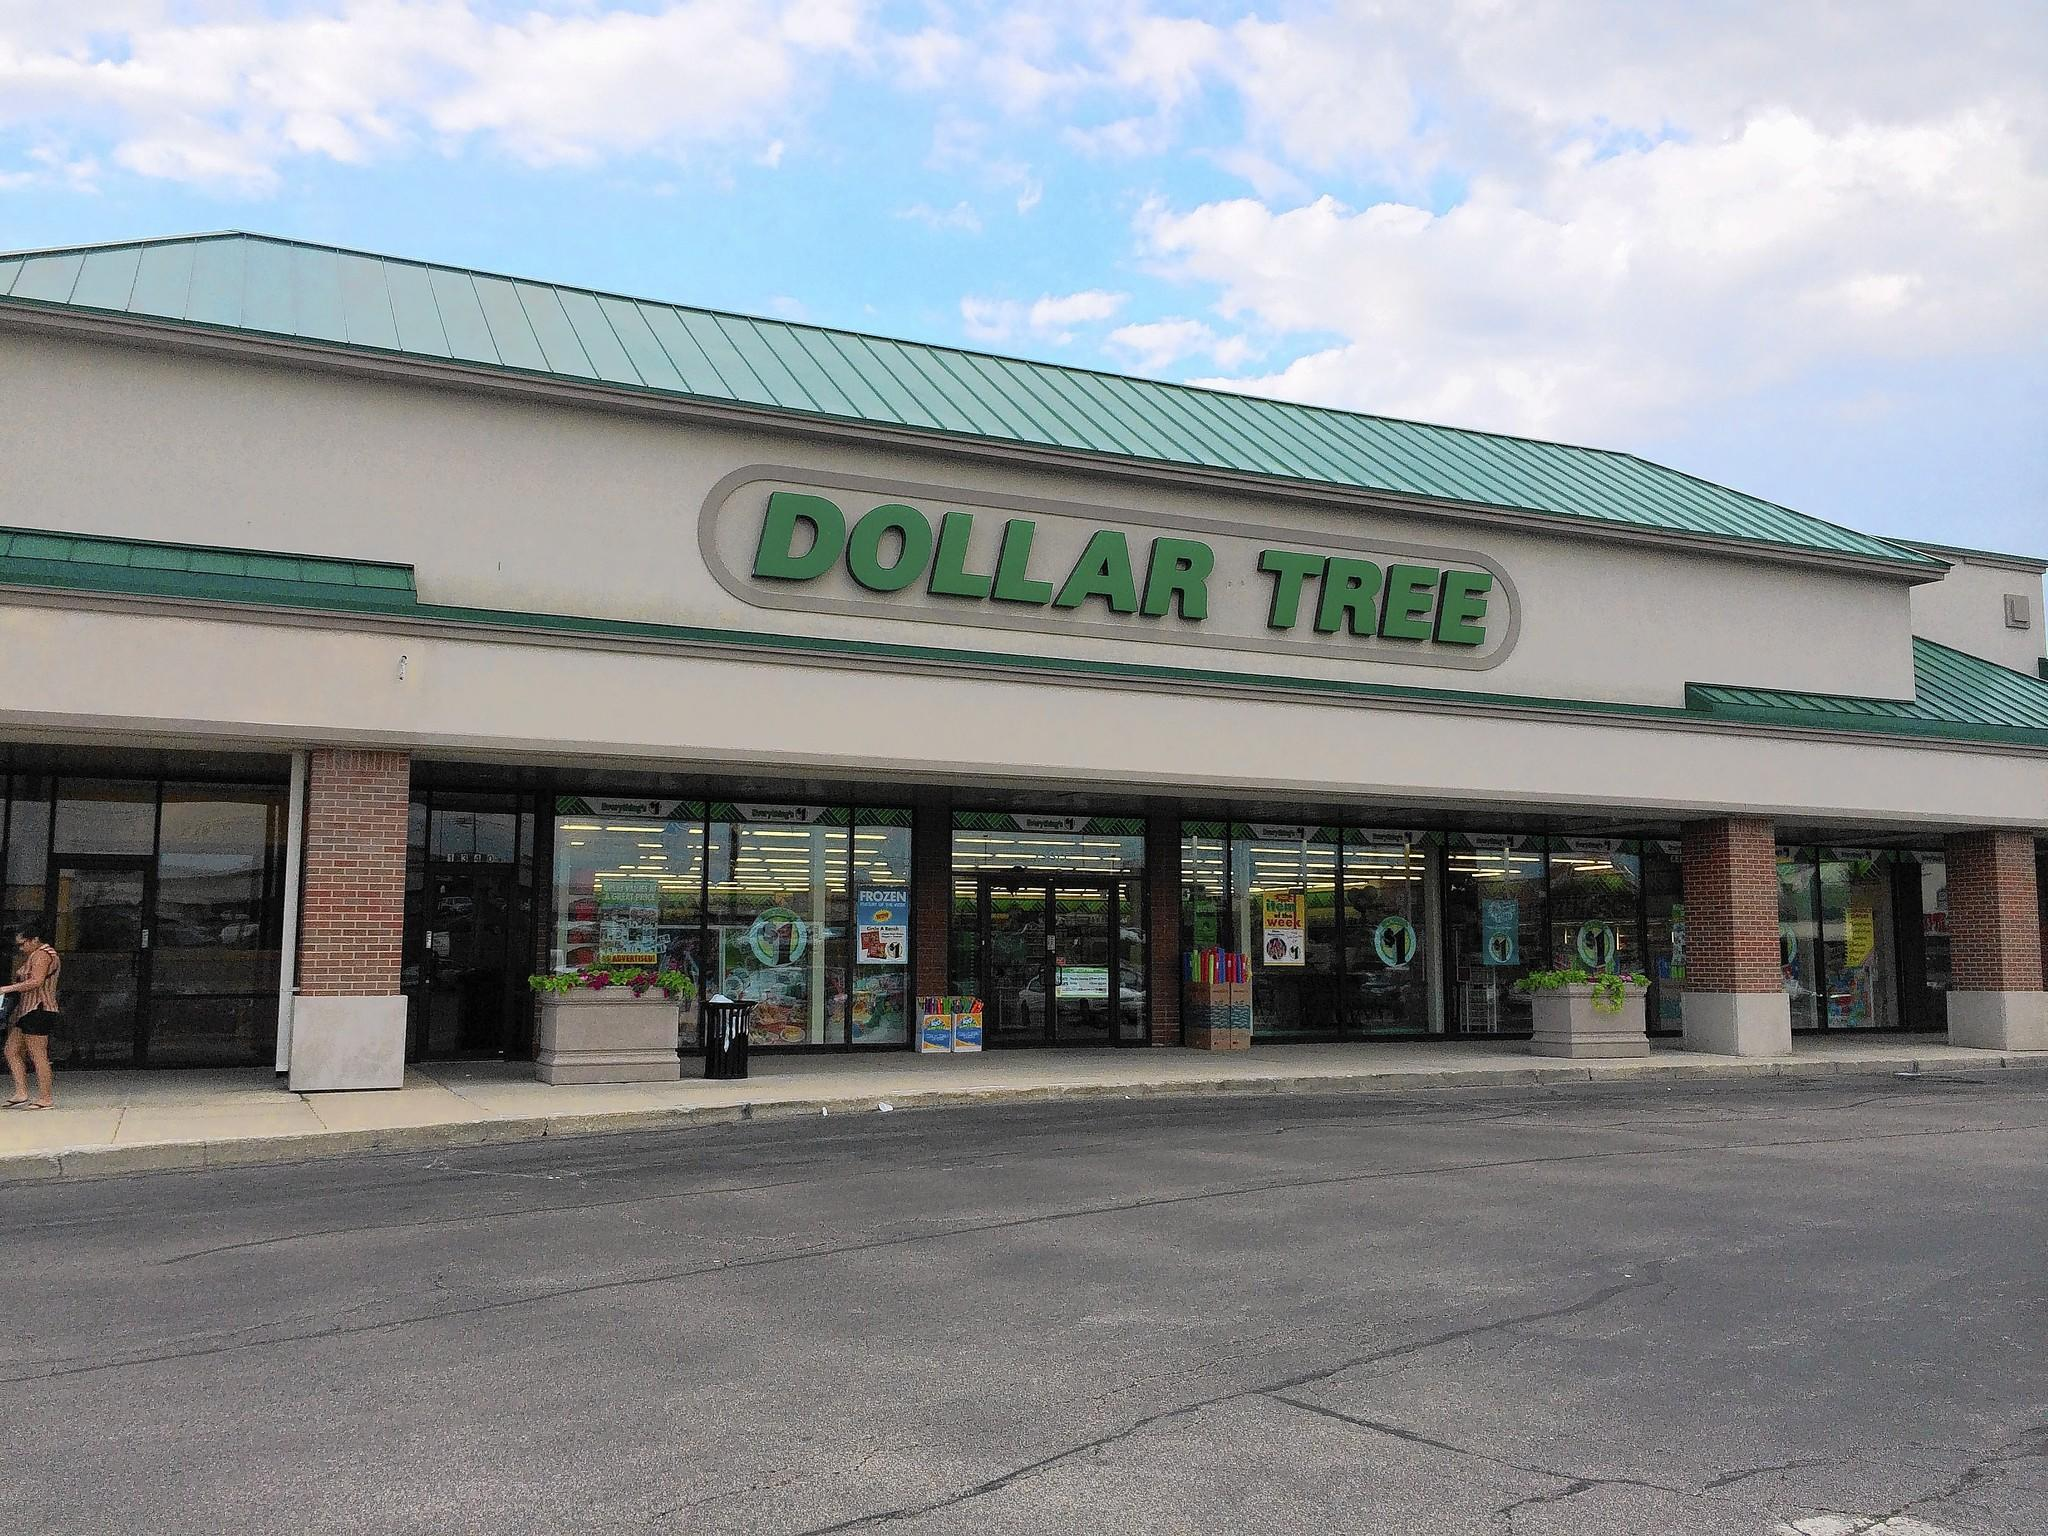 The Dollar Tree store on Butterfield Road and its other Downers Grove location were burglarized on the same night.